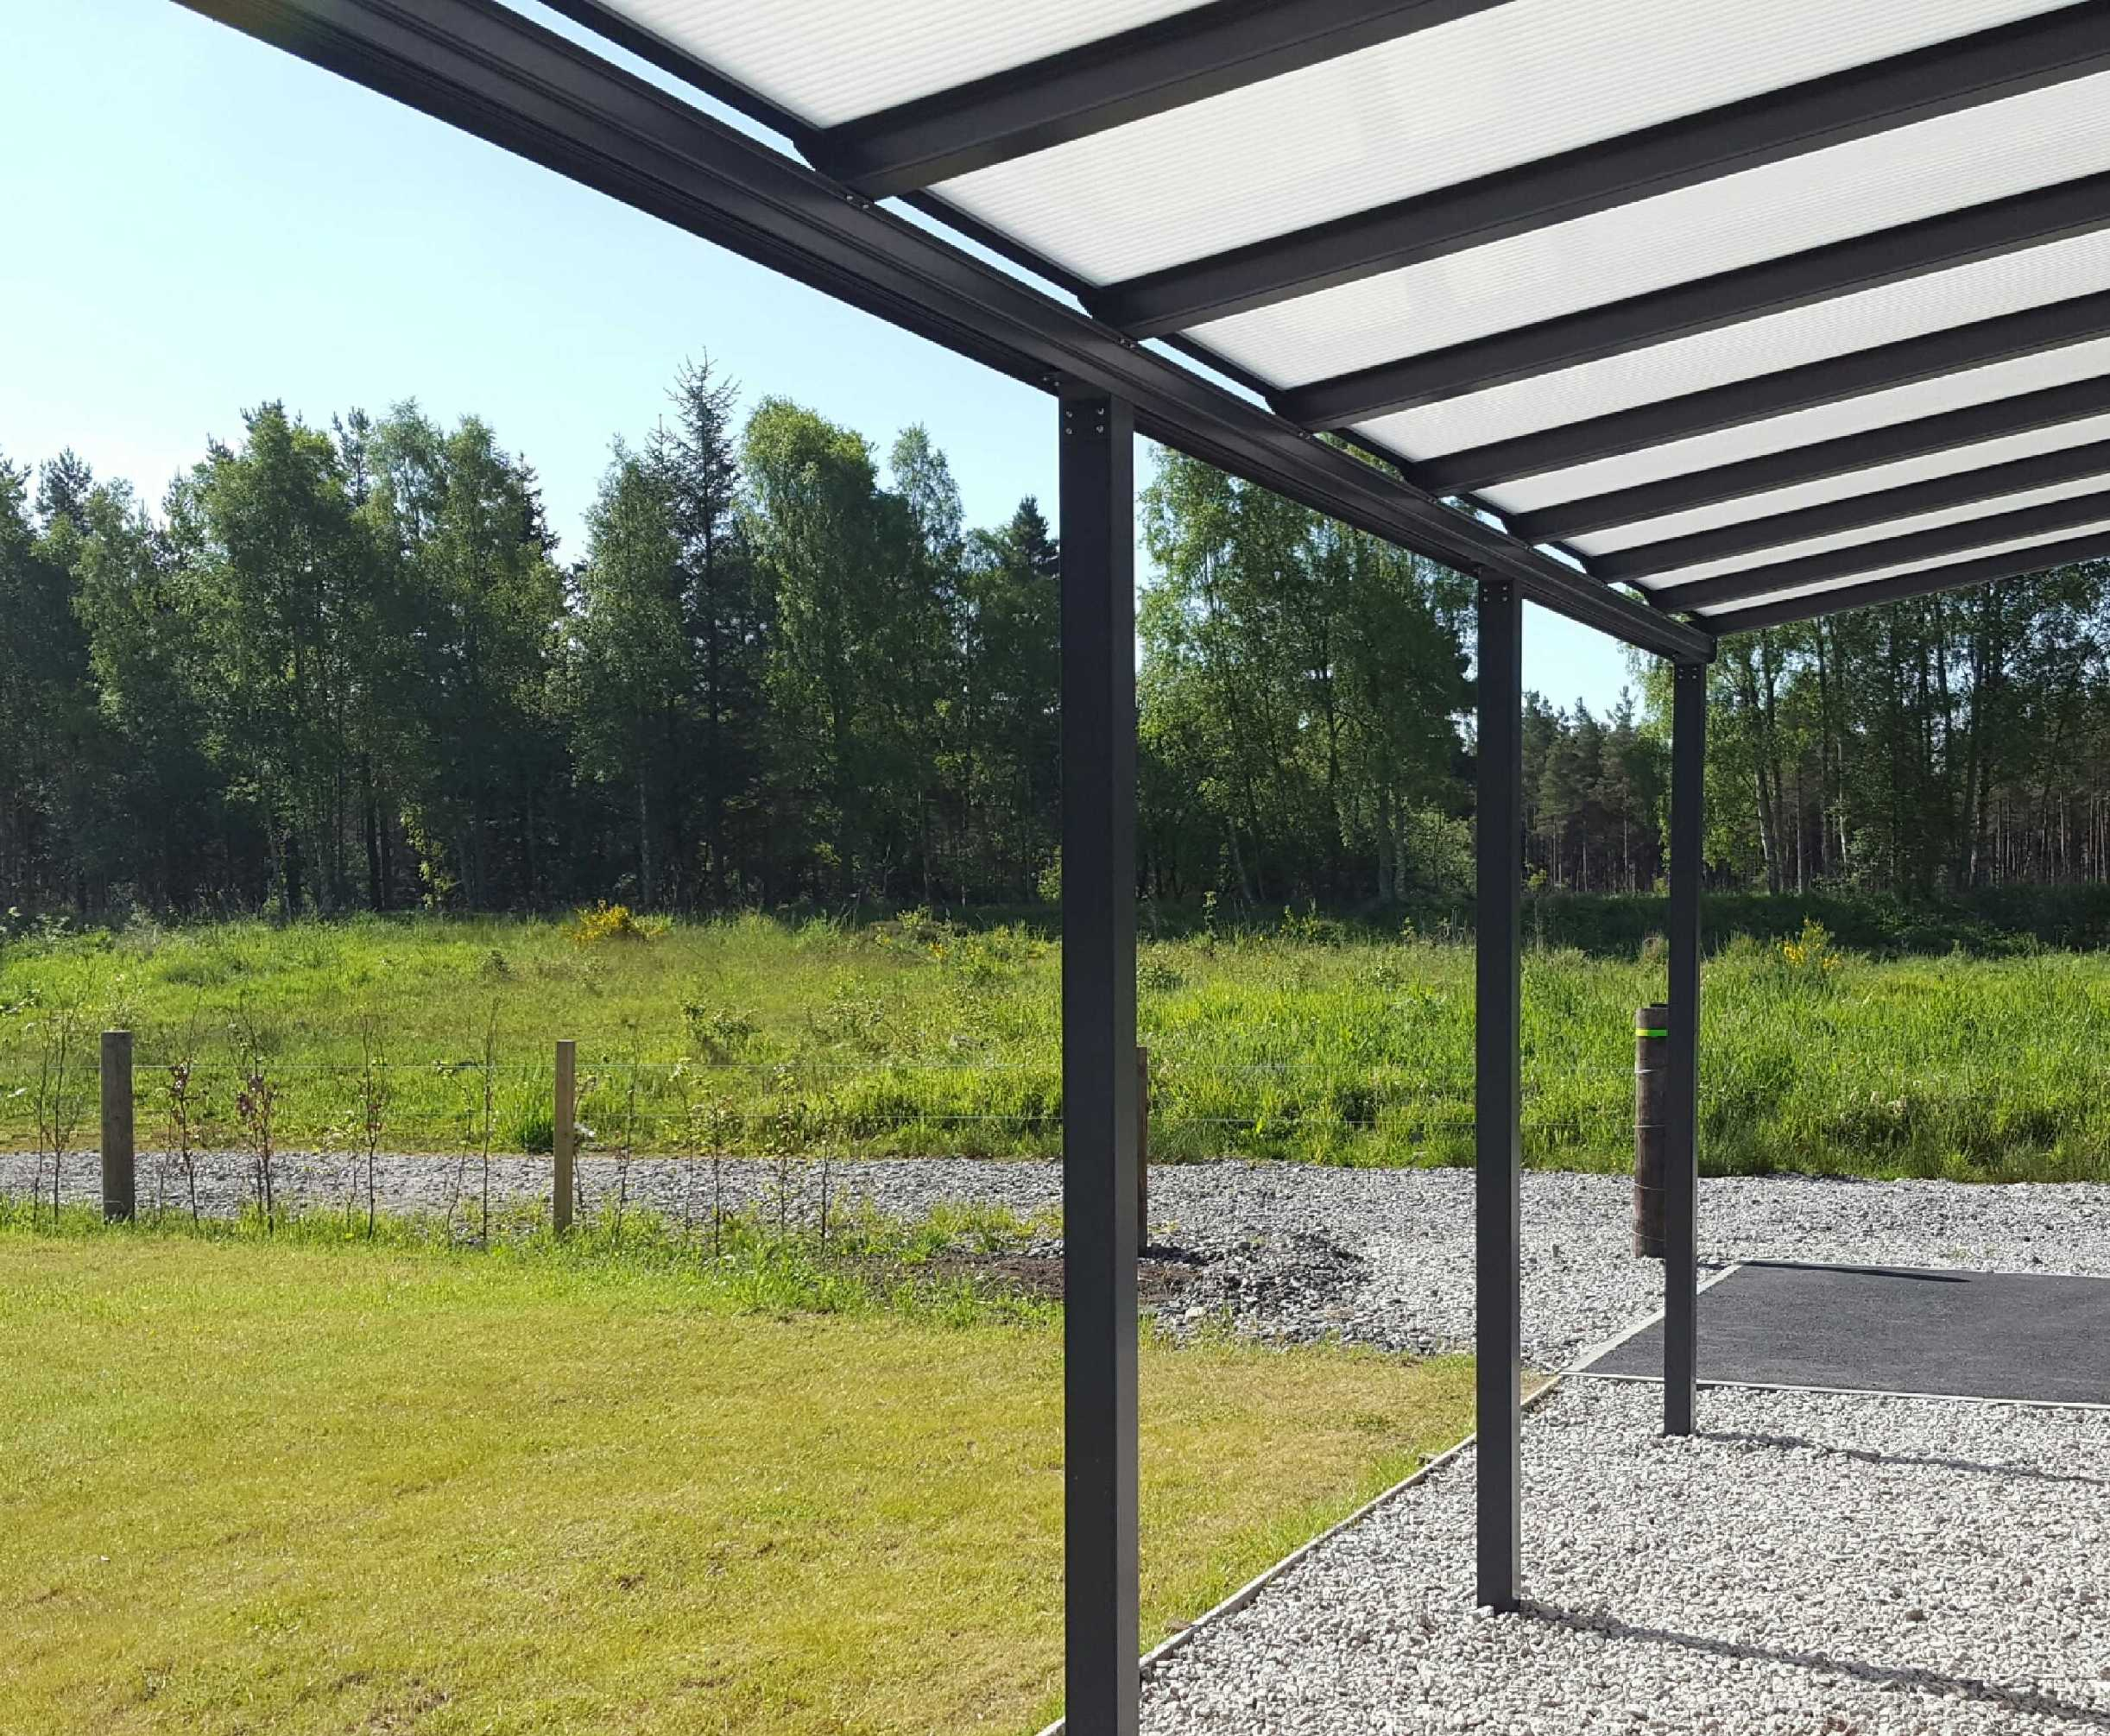 Omega Smart Lean-To Canopy, Anthracite Grey, 6mm Glass Clear Plate Polycarbonate Glazing - 6.3m (W) x 3.5m (P), (4) Supporting Posts